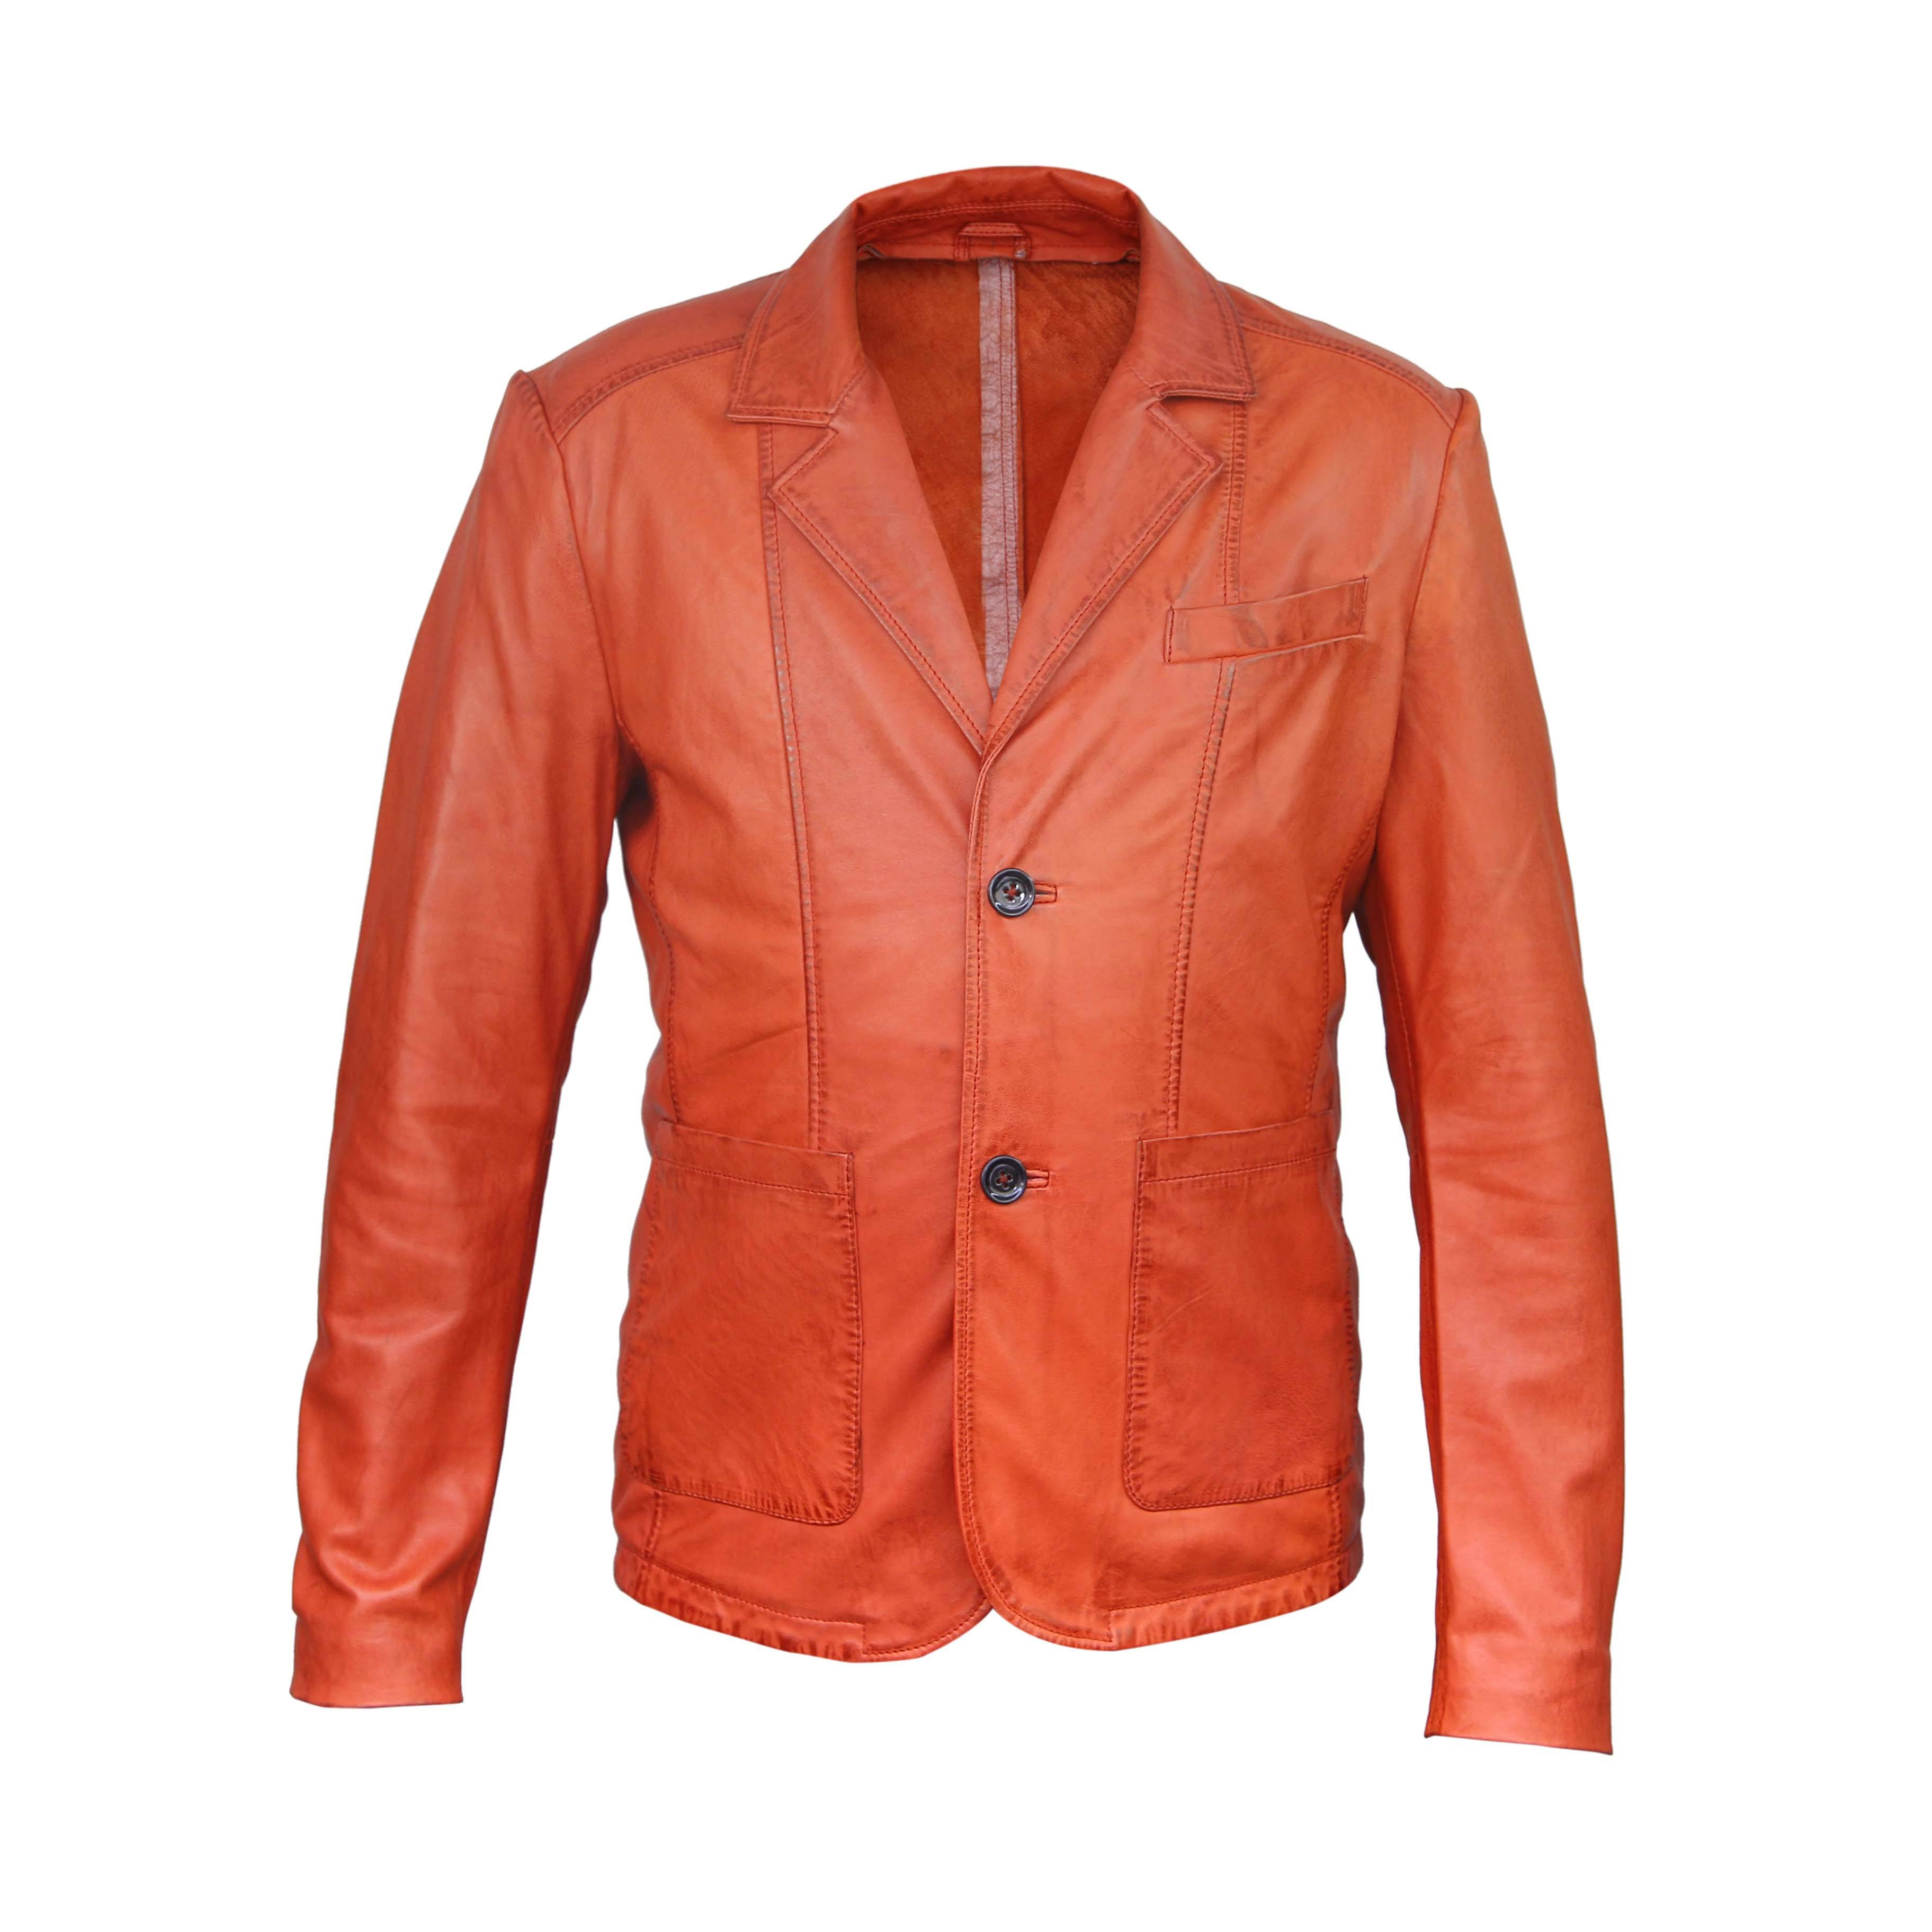 LEATHER blazers for mens 100% leather jackets for custom size fashion out fits for mens